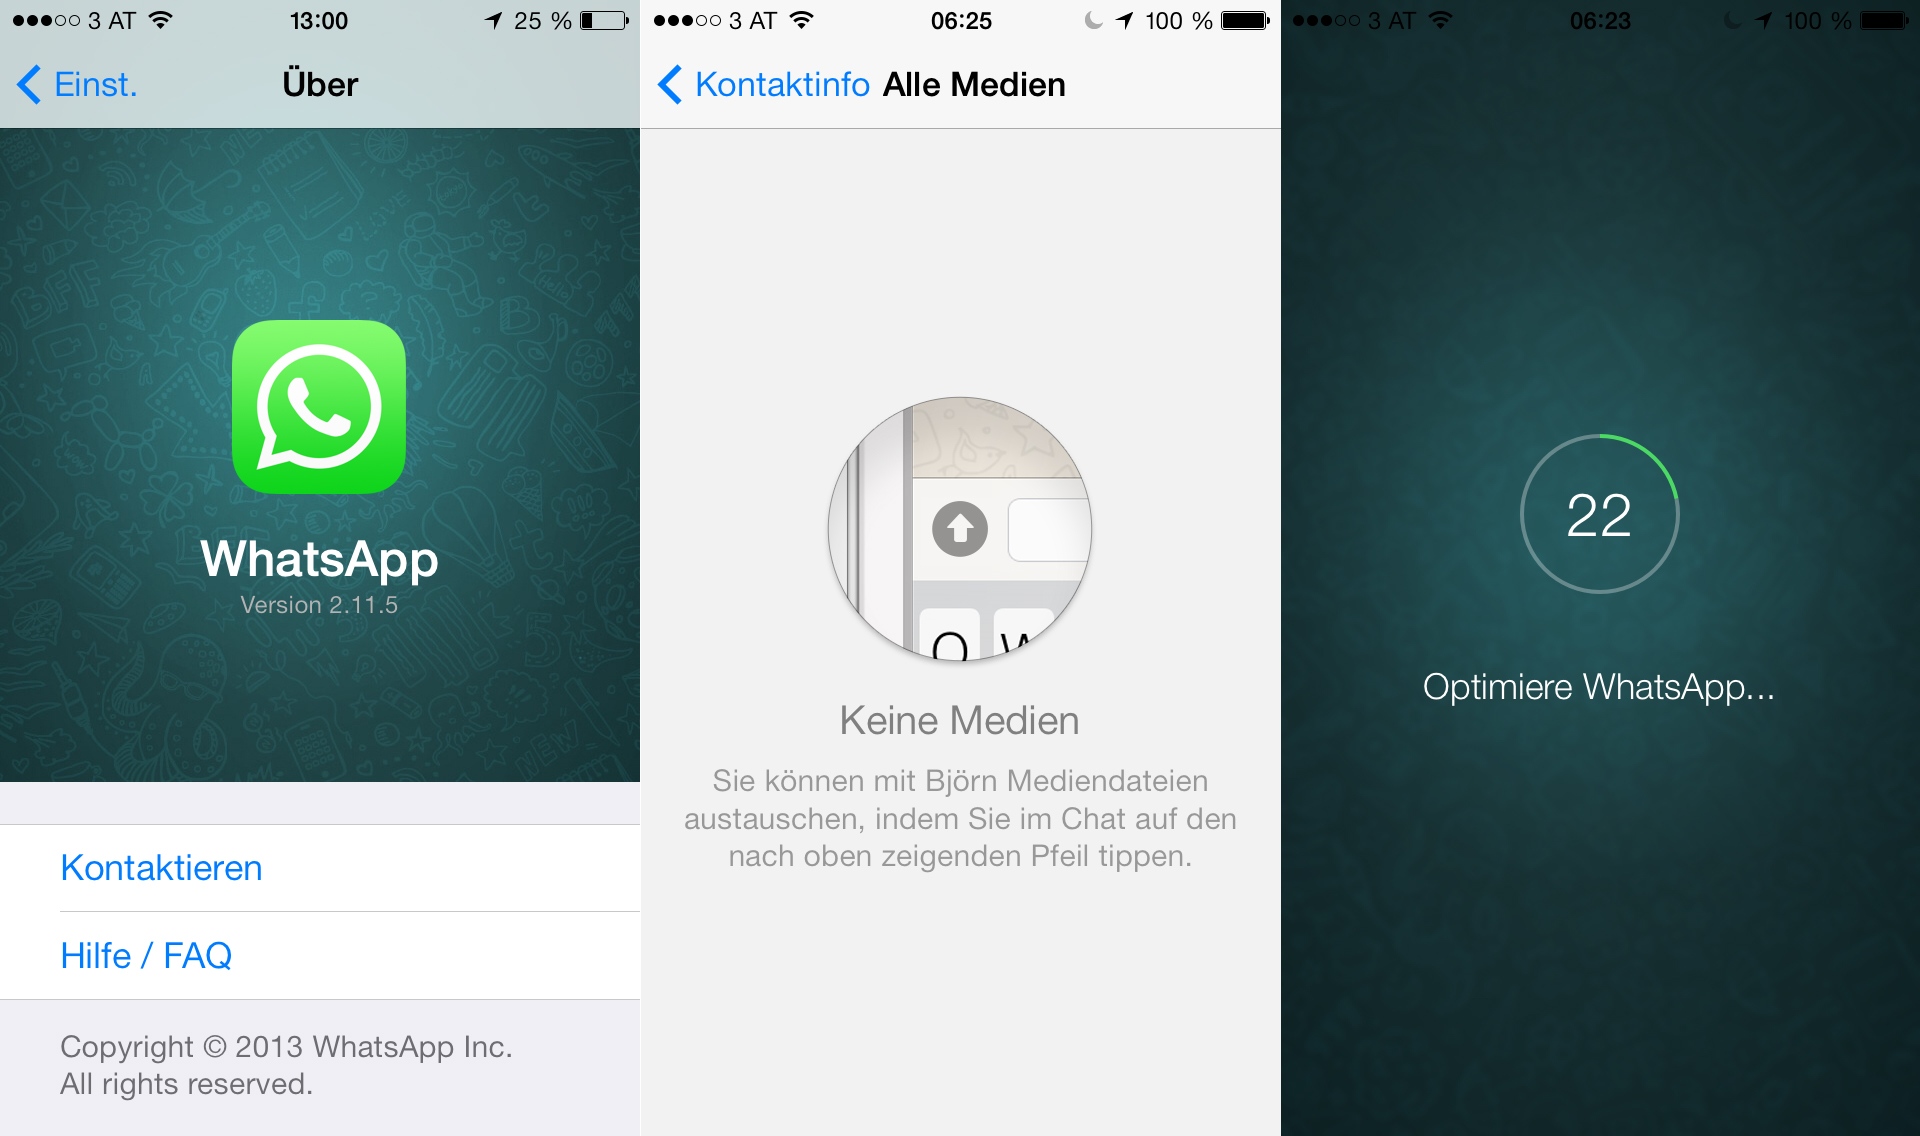 WhatsApp iOS 7 Update - Änderungen Hack4Life Review - Optimieren - Einstellungen - Versionsnummer - 2.11.5